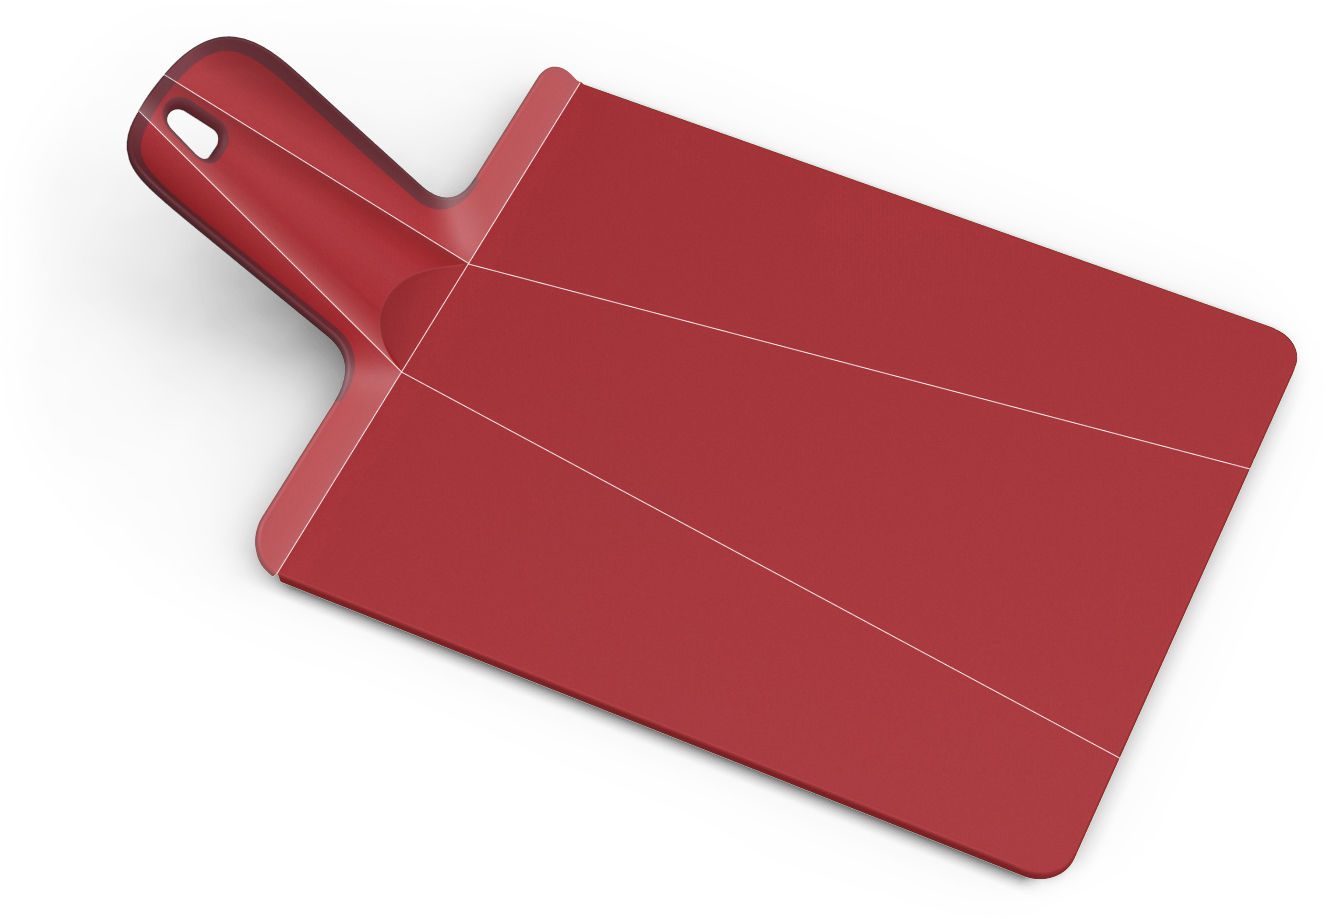 Kitchenware - Cool Kitchen Gadgets - Chop2Pot Chopping board - Foldable by Joseph Joseph - Red - Polypropylene